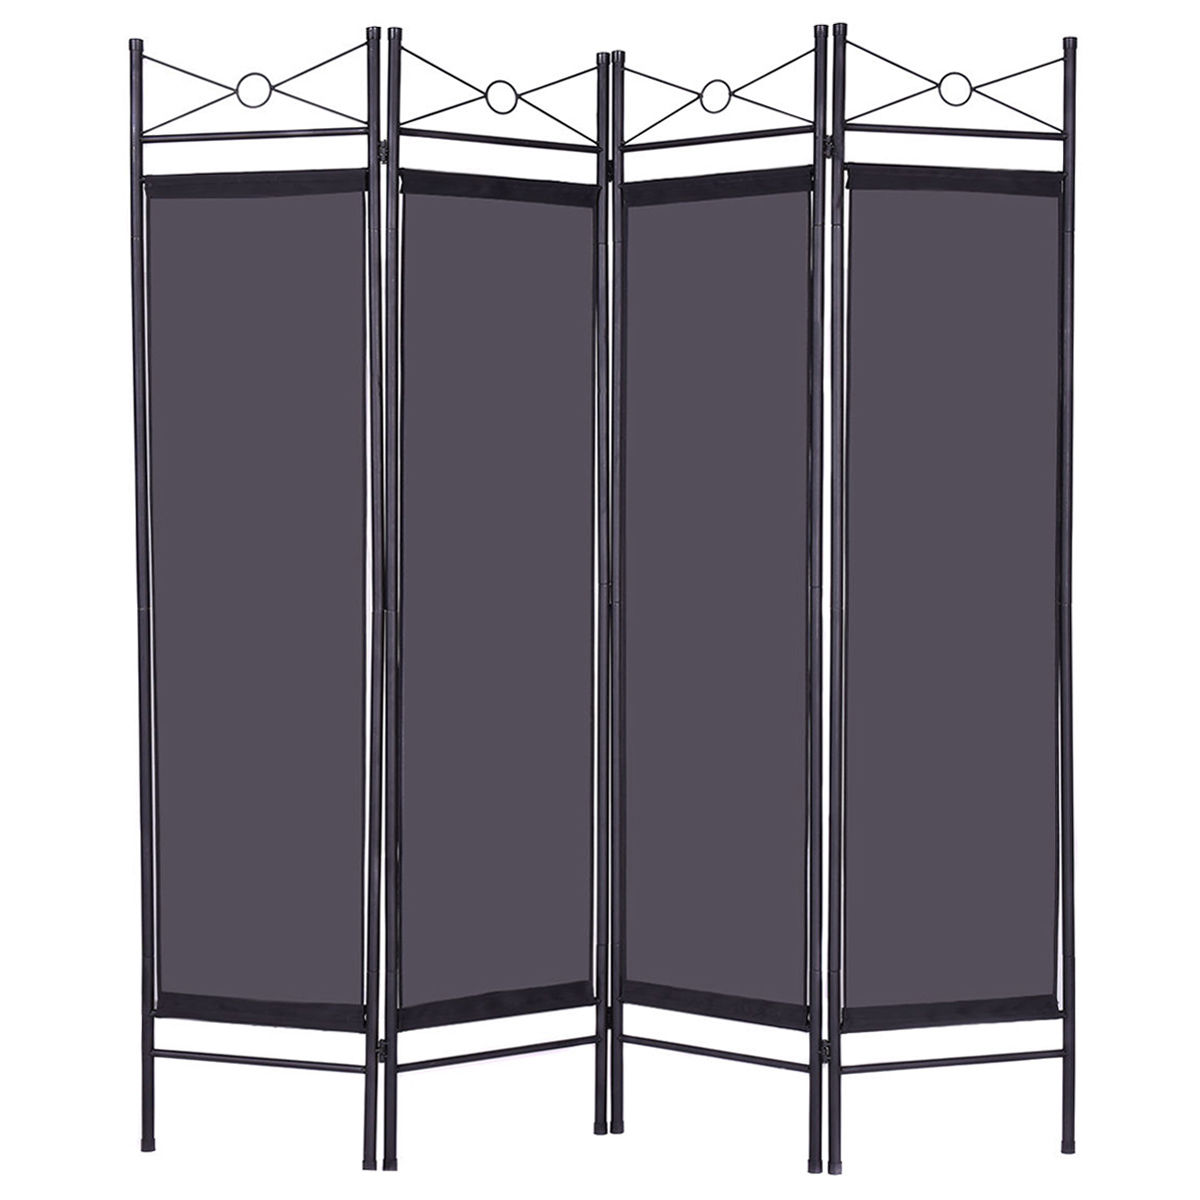 Home Room Dividers Best Room Dividers  Walmart Inspiration Design